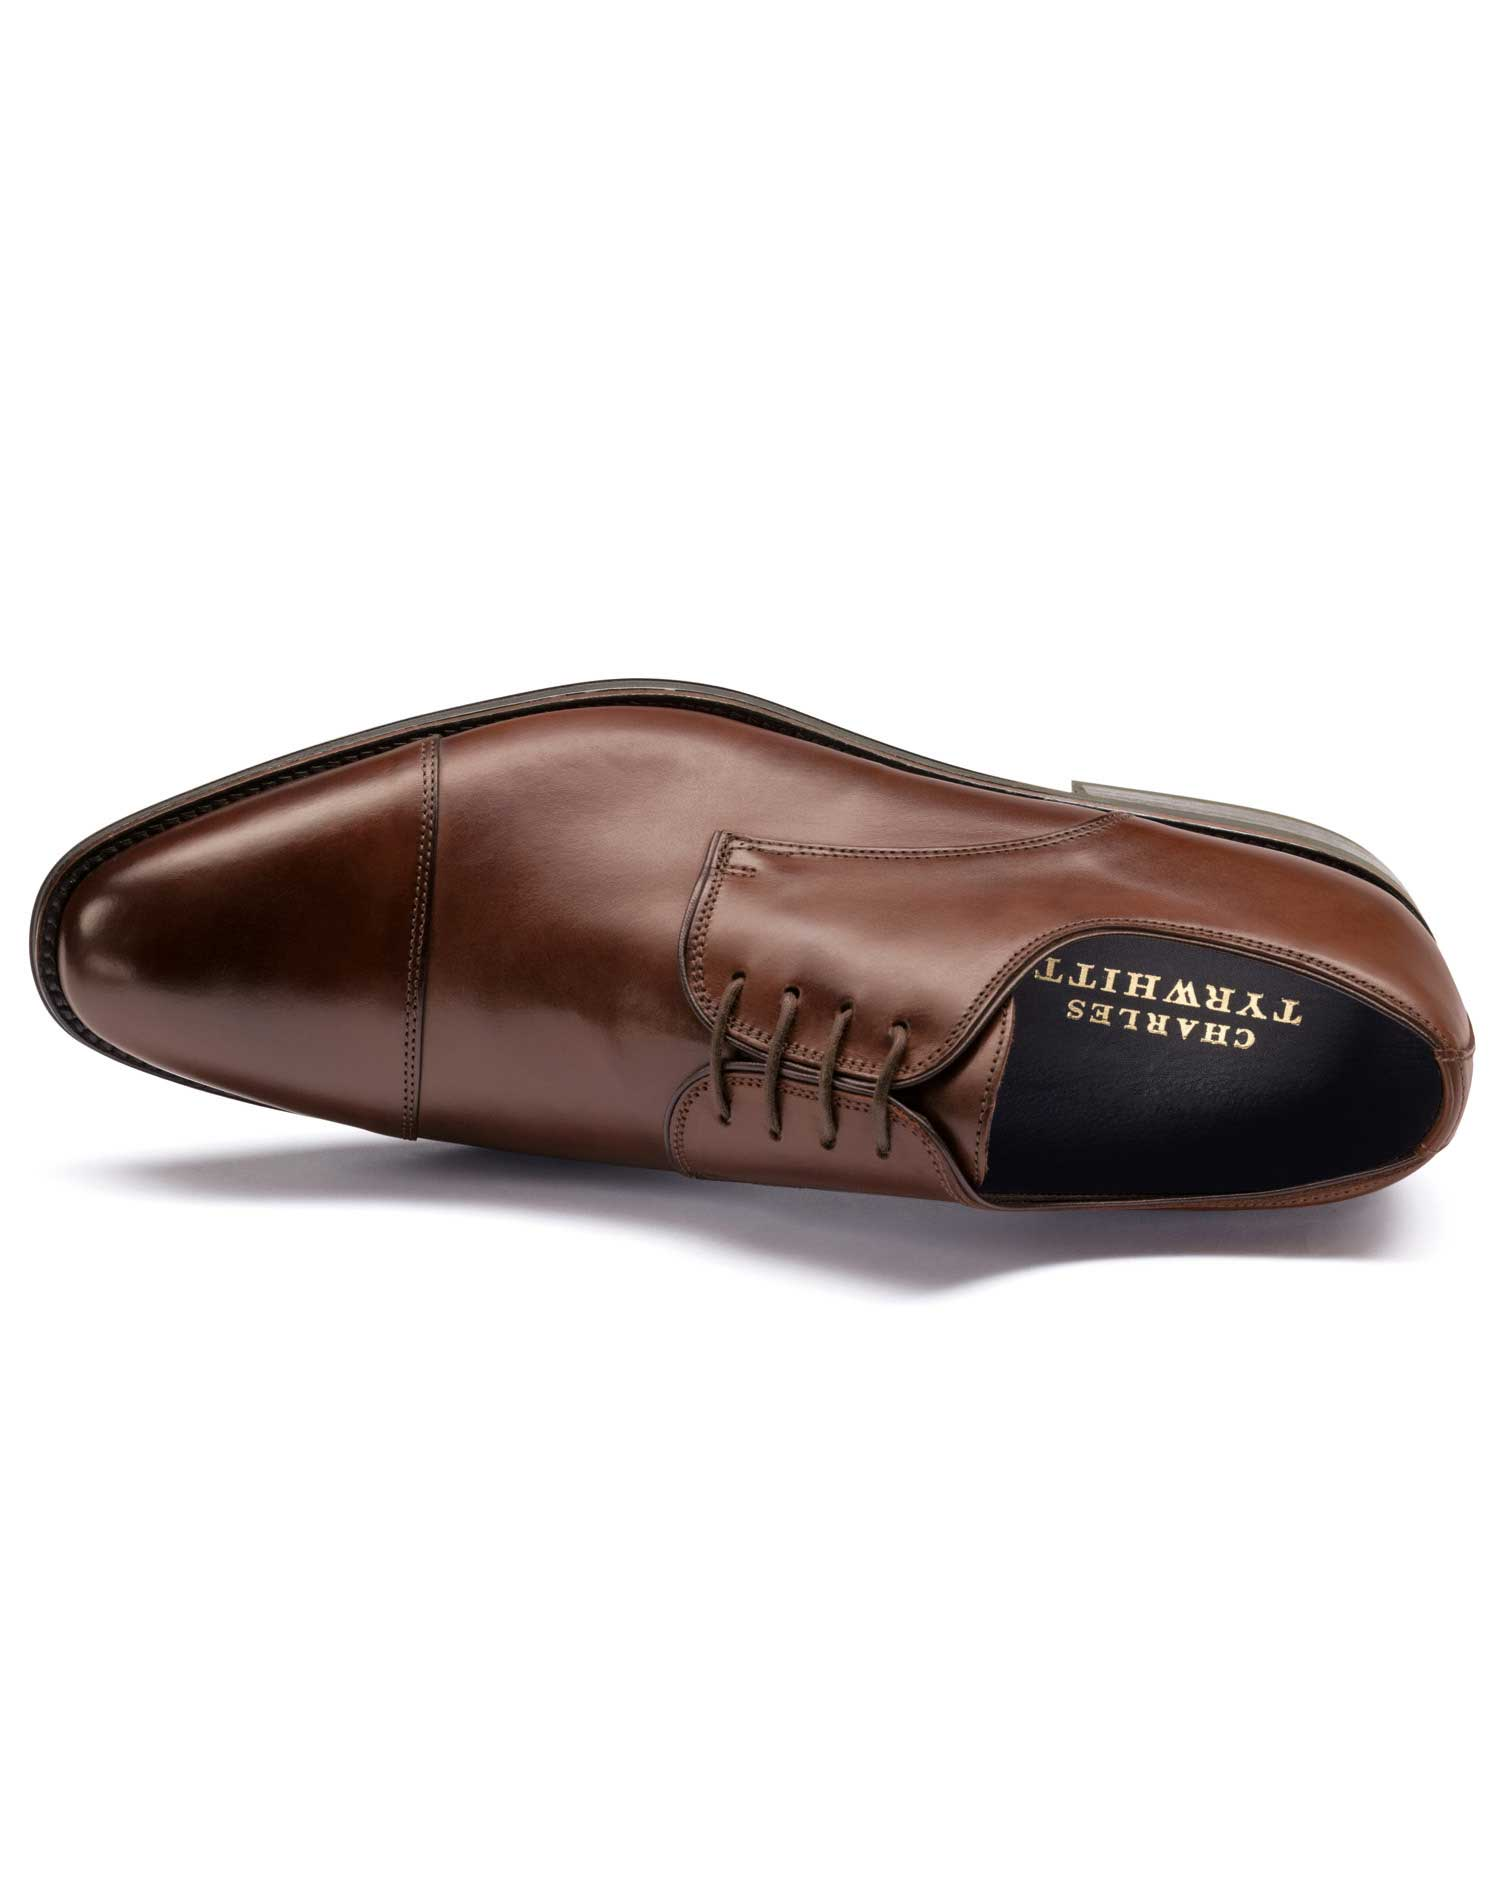 Brown Performance Derby Toe Cap Shoe Size 6 R by Charles Tyrwhitt